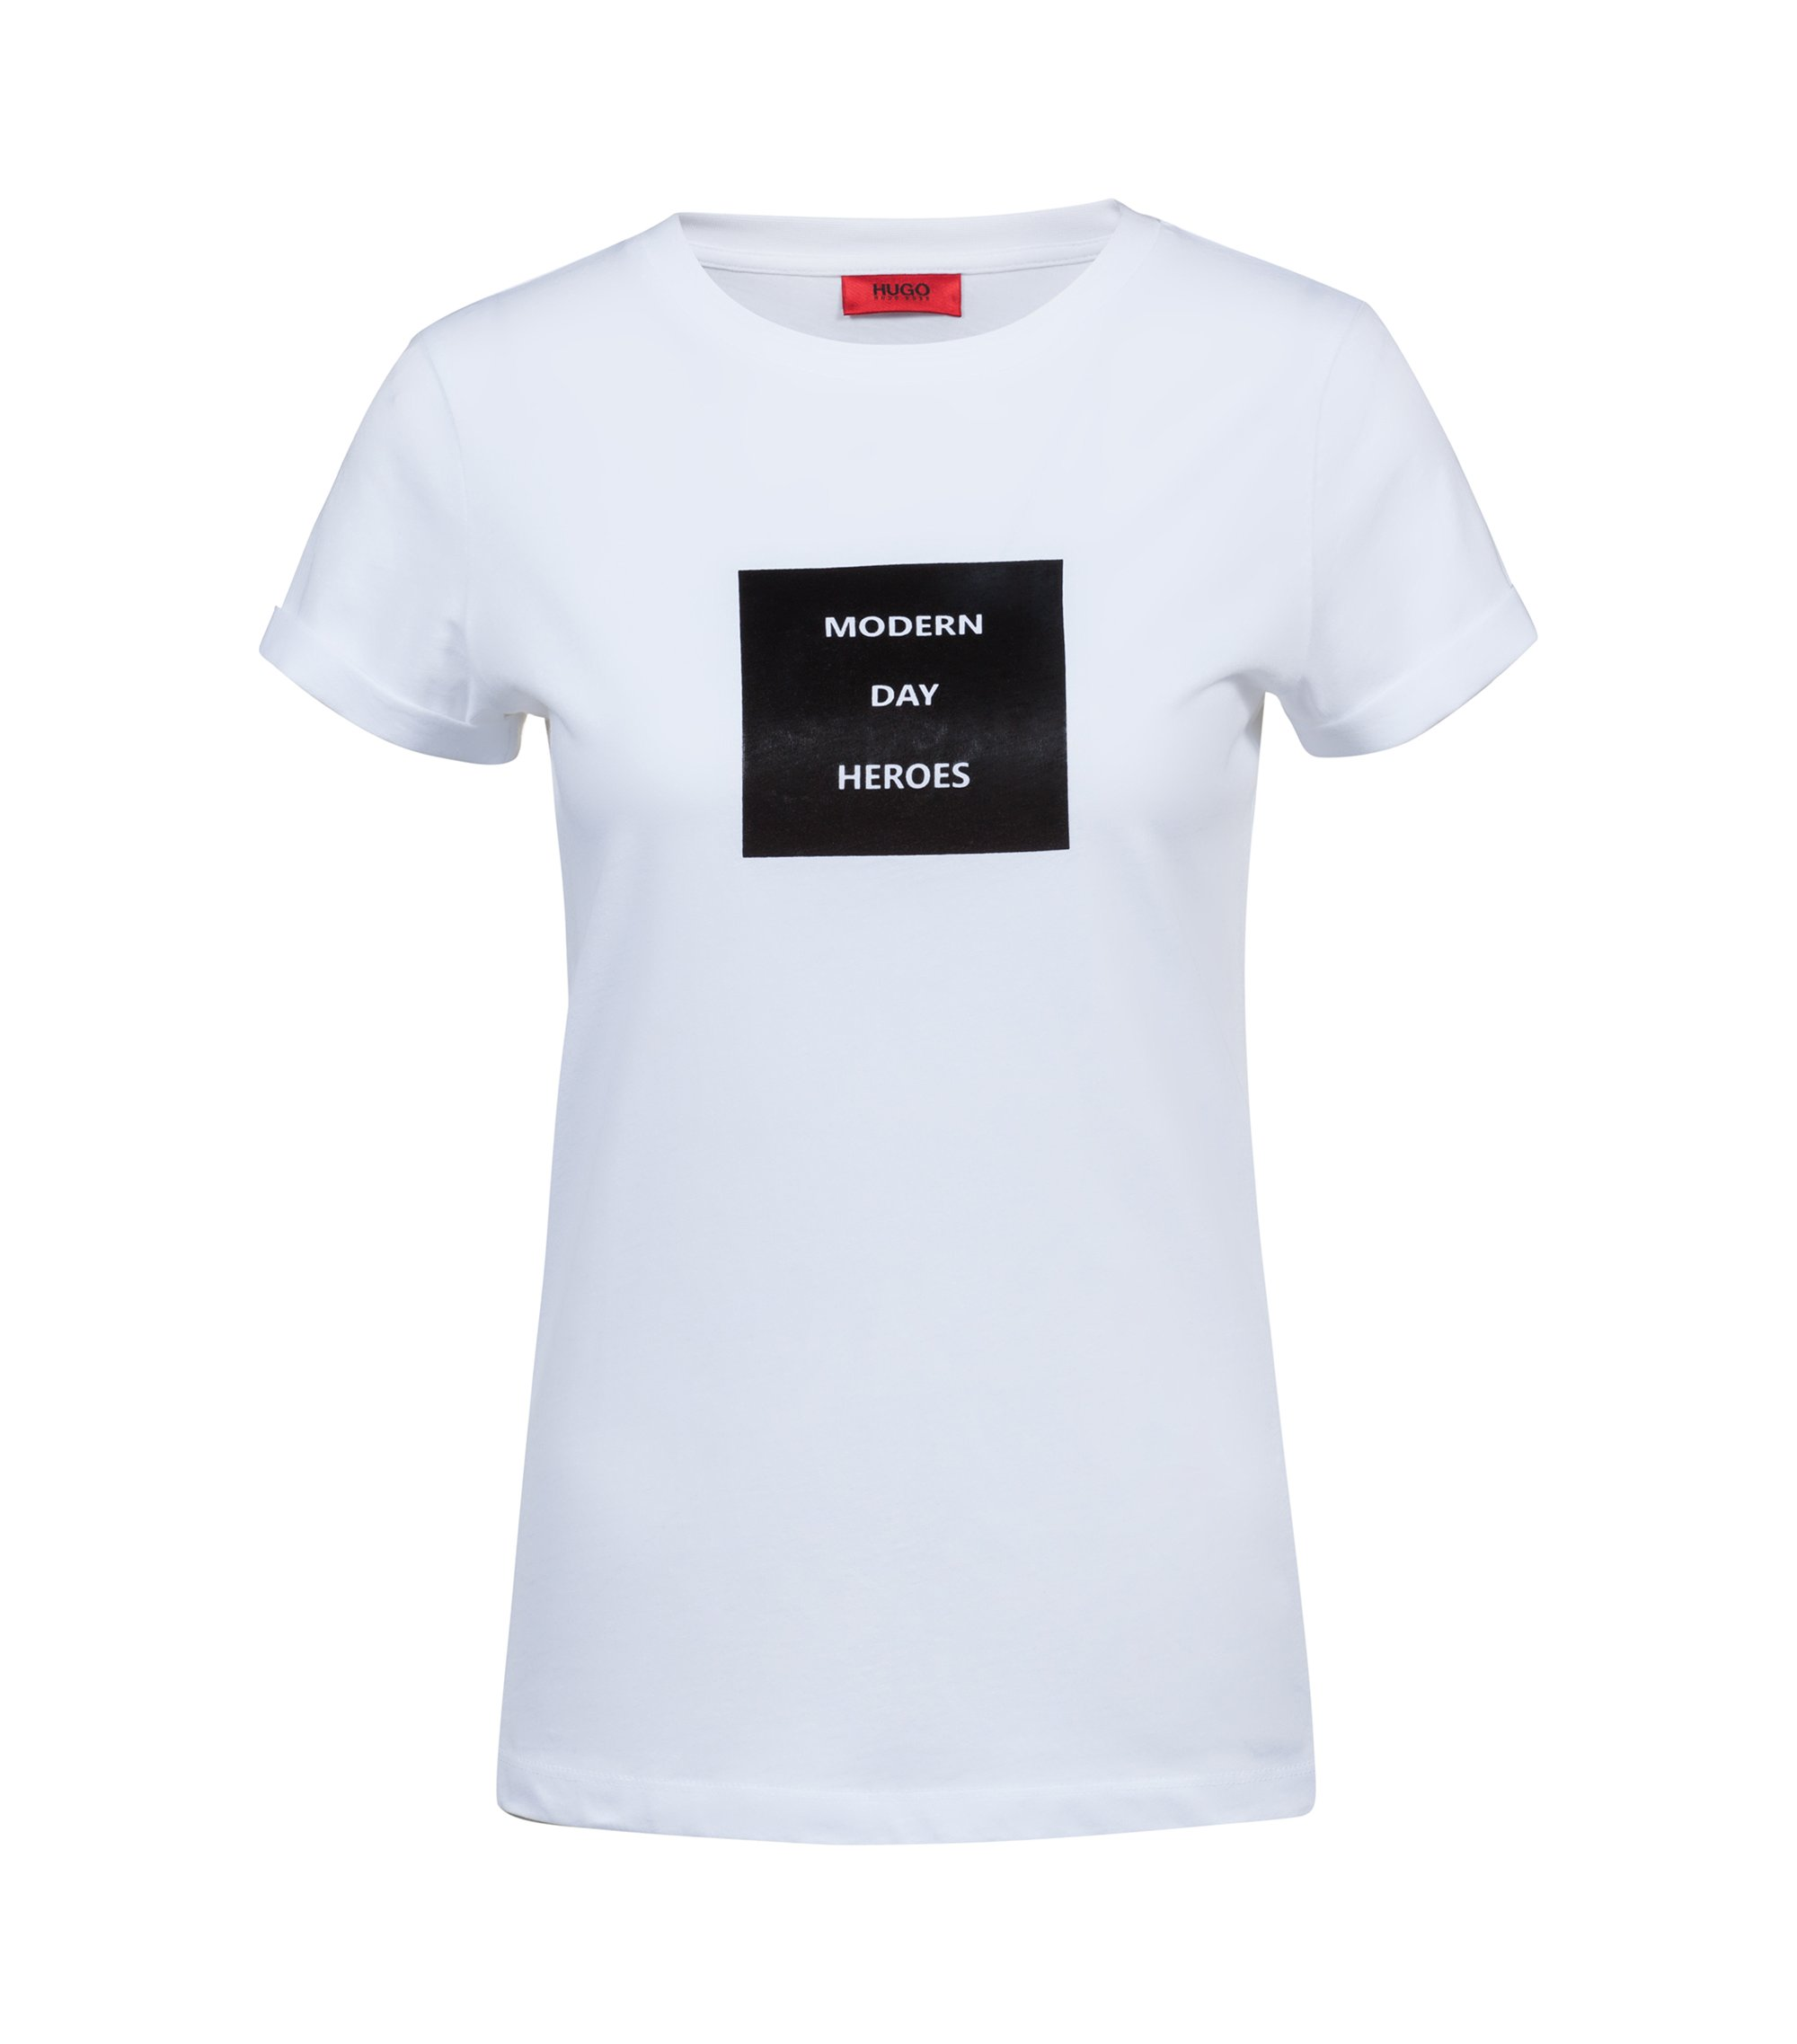 T-shirt Slim Fit en coton à l'imprimé slogan de la collection, Blanc